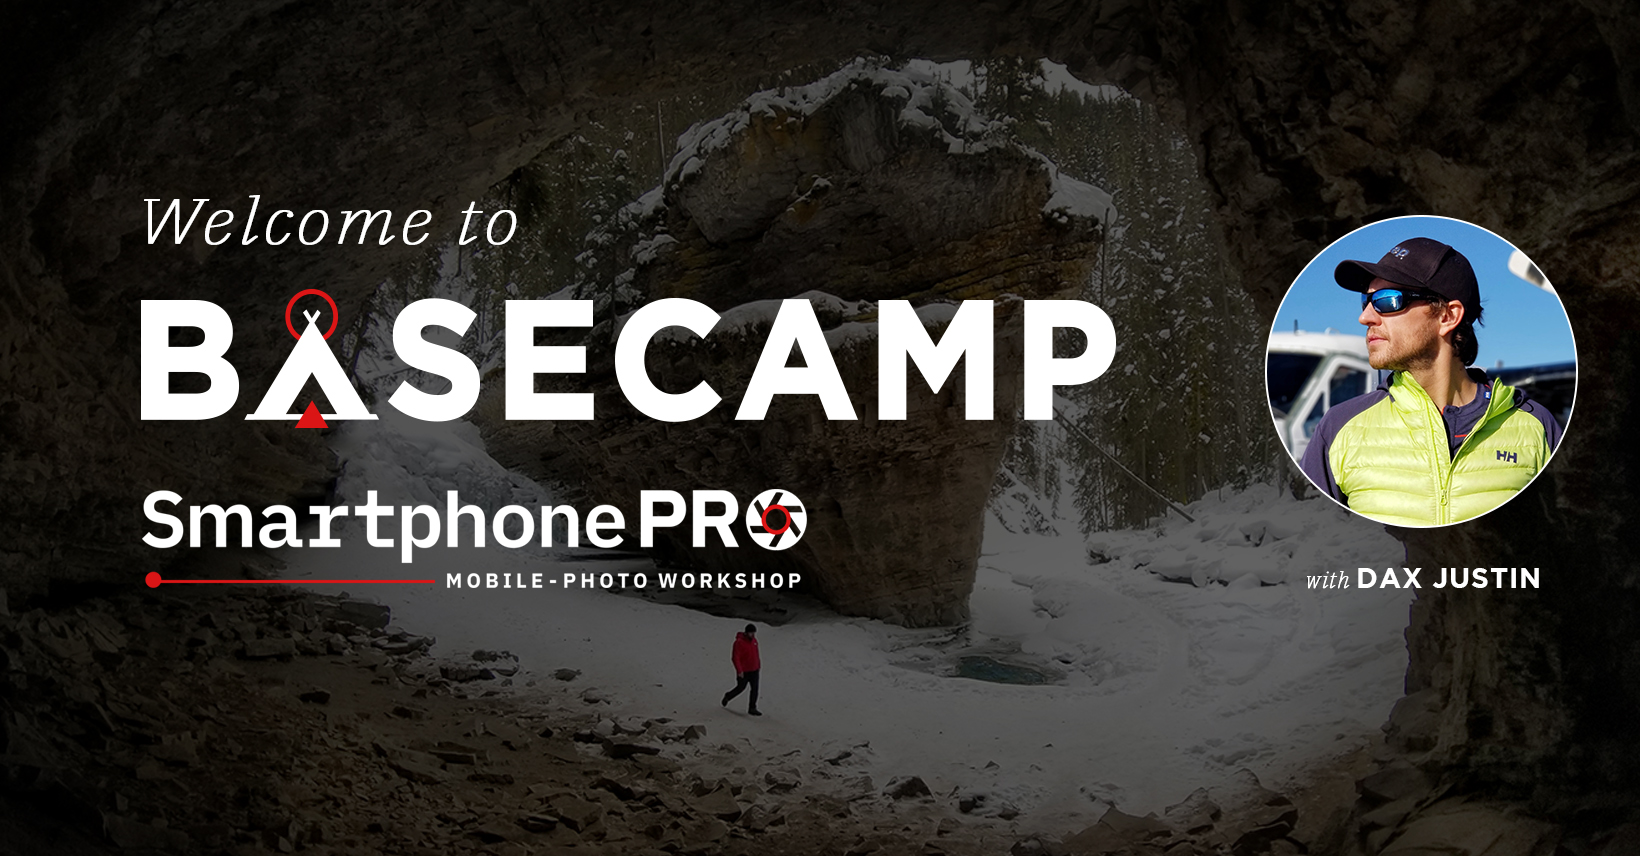 BONUS: LIFETIME access to the Smartphone Pro 'BASECAMP' Community